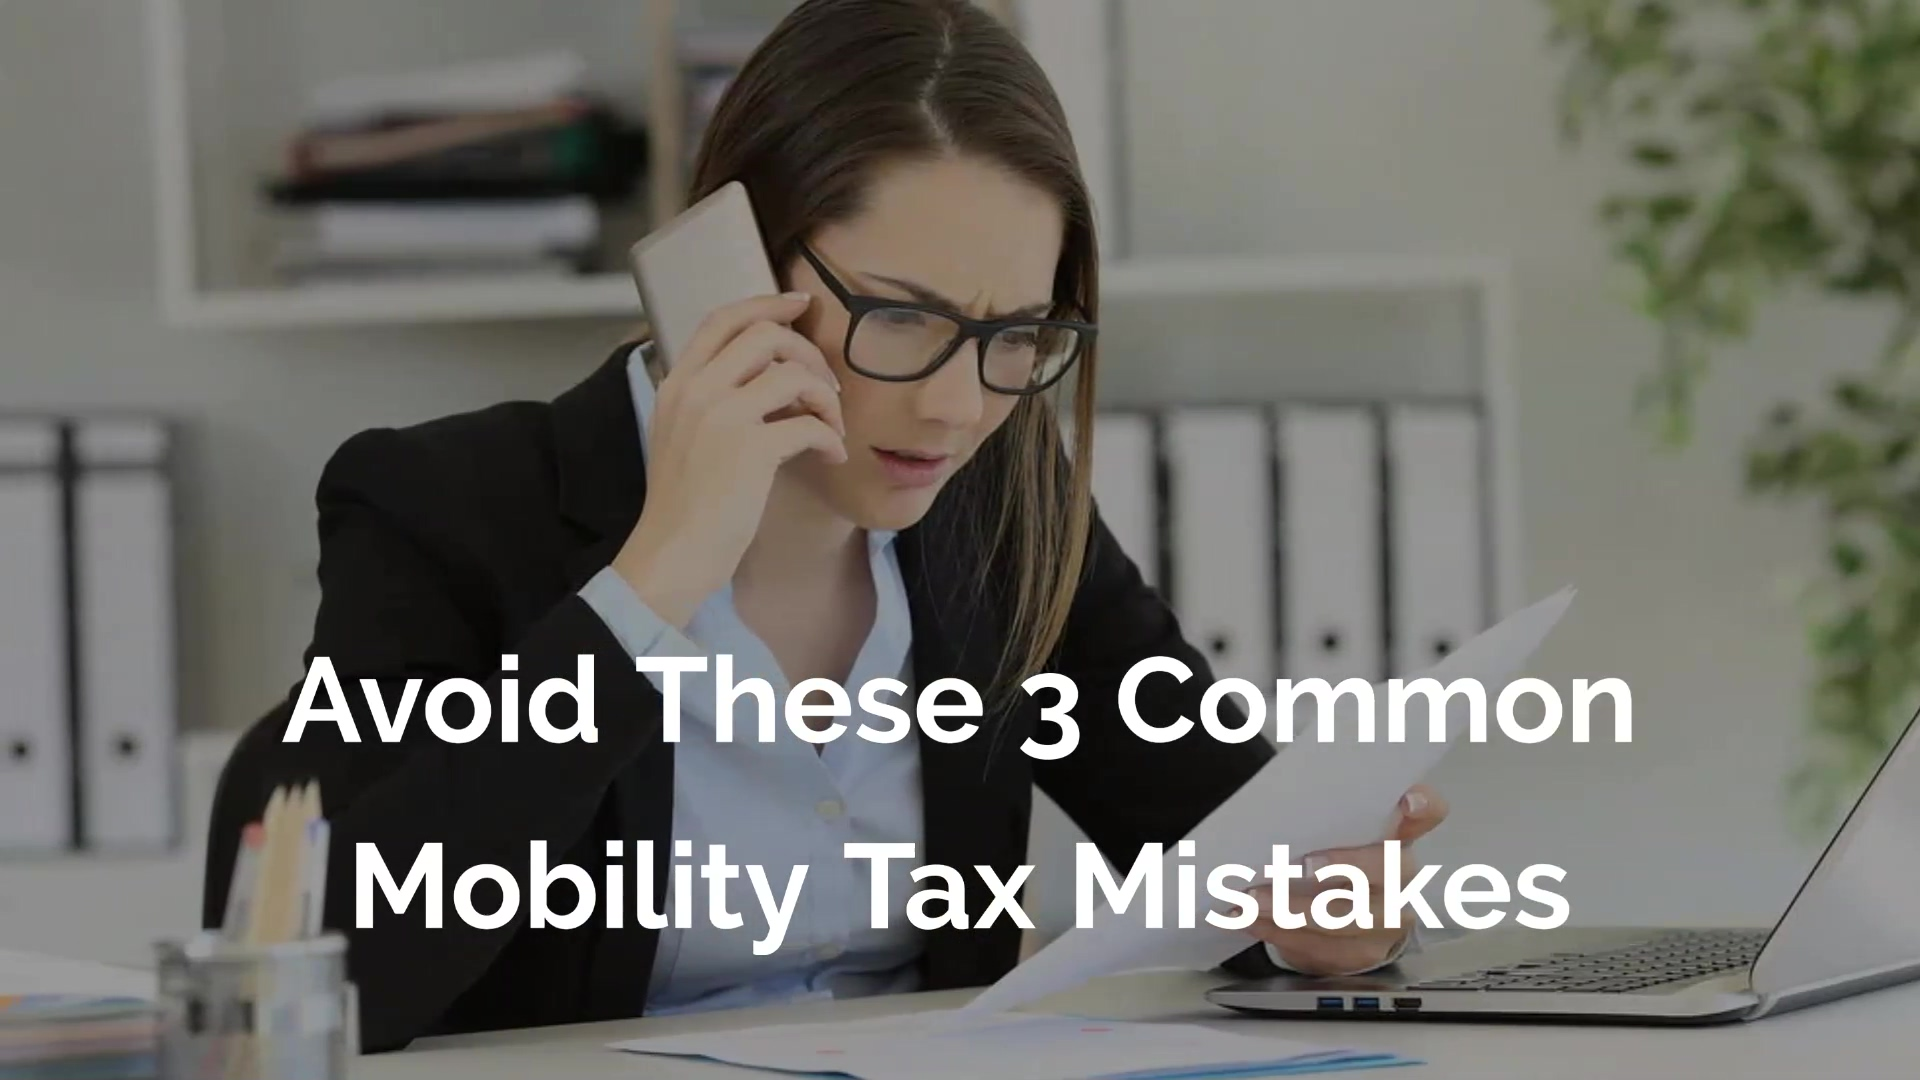 Avoid_These_Common_Mobility_Tax_Mistakes-v2